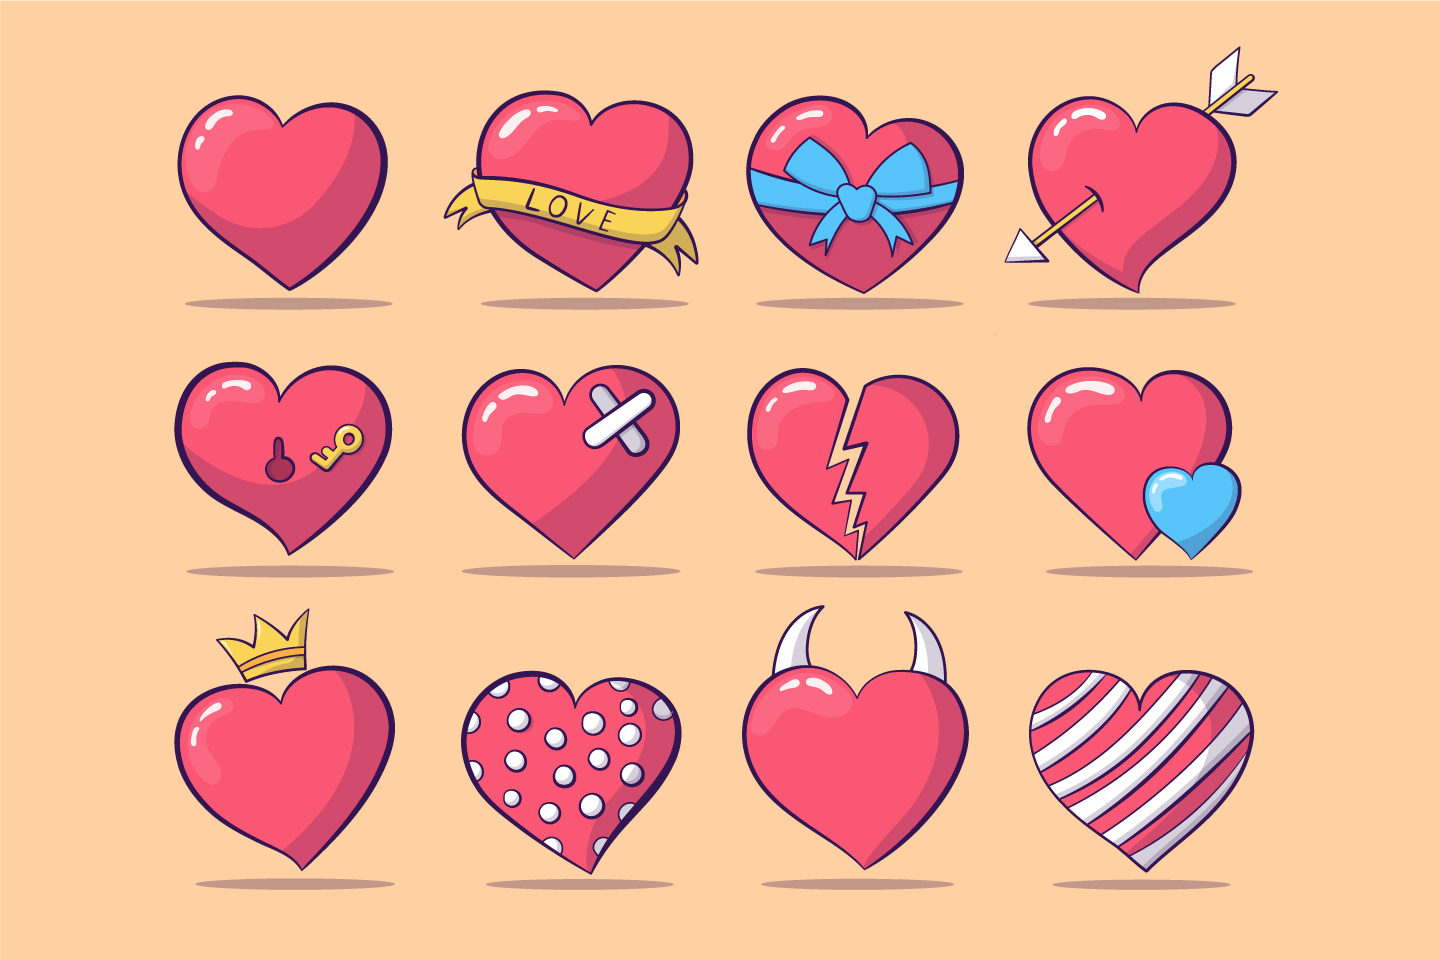 12 Thematic Hearts on the Theme of Love and Romance